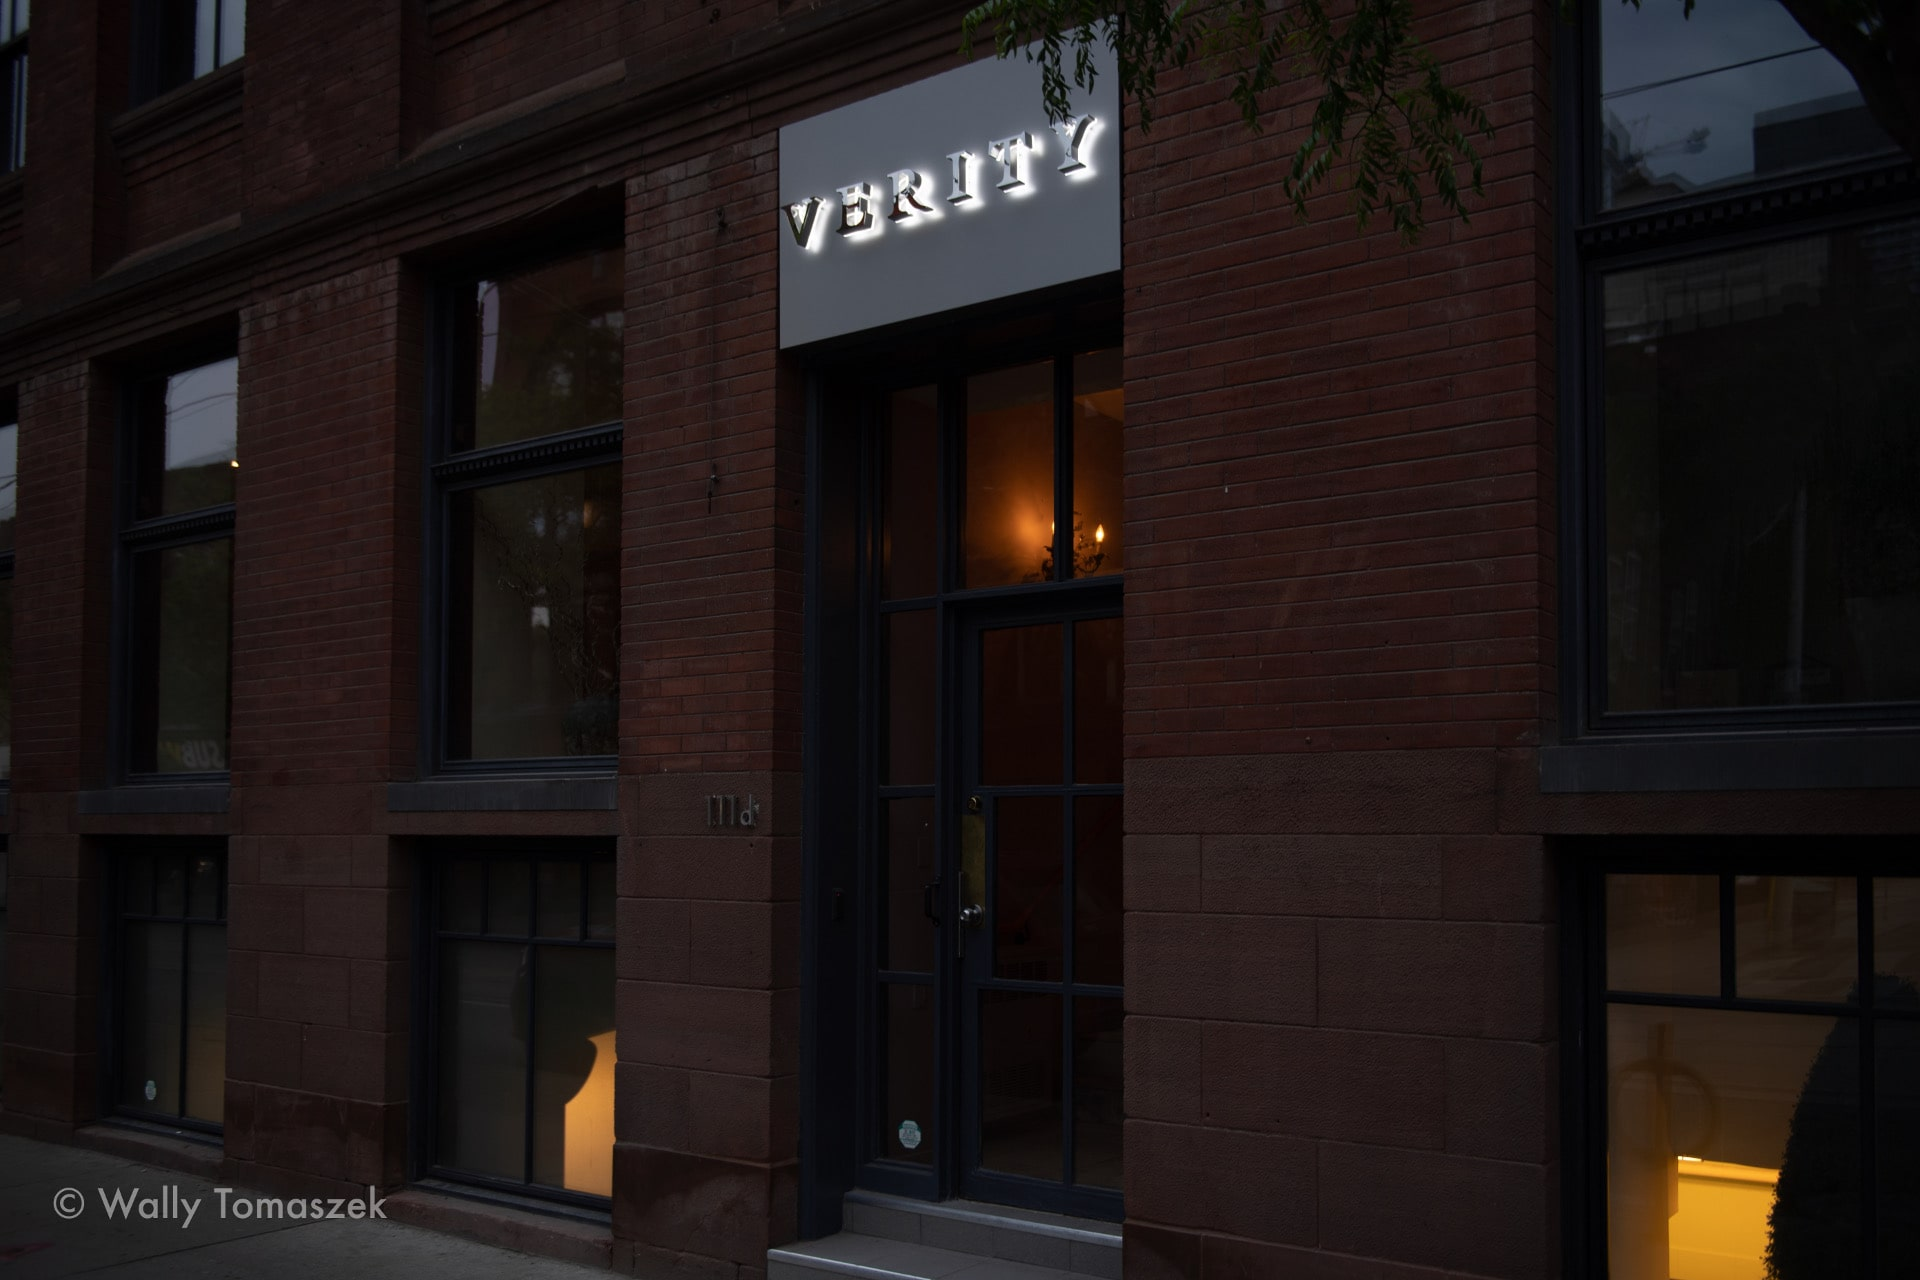 Verity Illuminated signs by Signarama Toronto